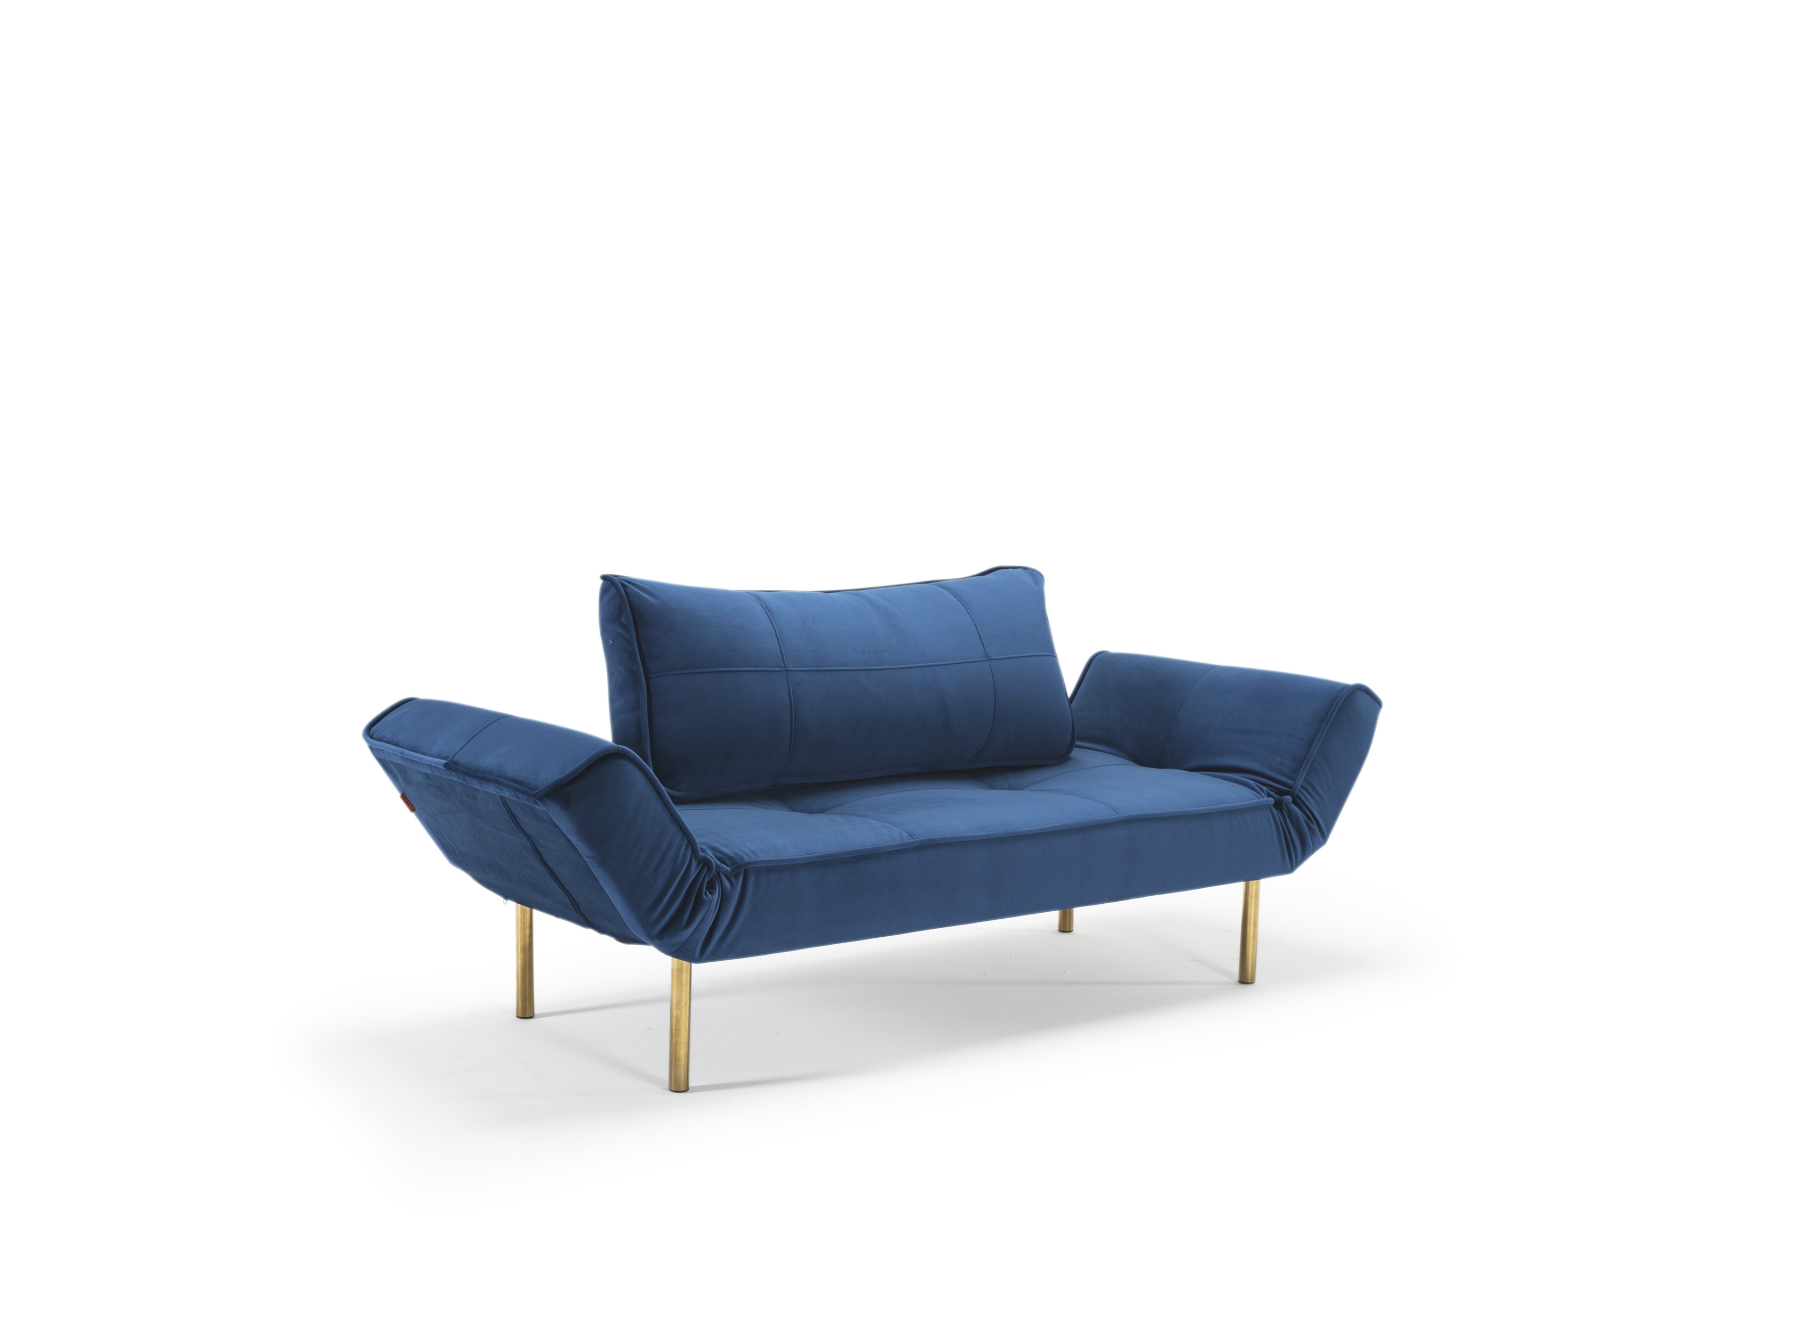 Zeal daybed 542 velvet royal blue 1 innovation living for Sofa bed australia